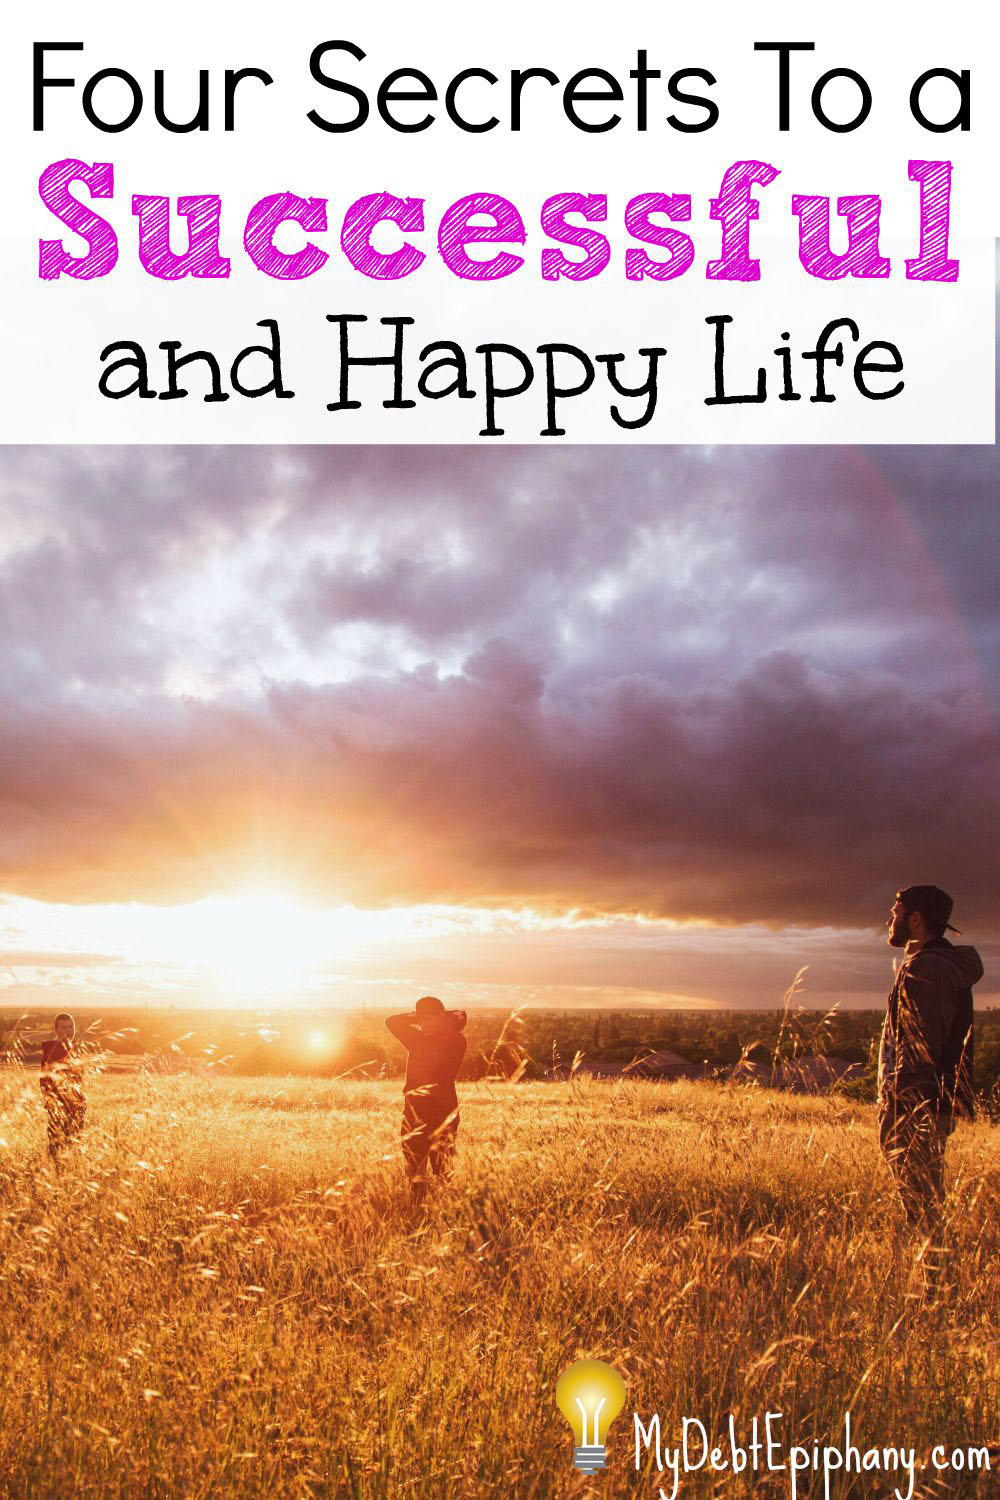 a good life happiness and success A simple path to happiness and success these behaviors were obviously not good—not for my happiness or for the happiness, and peace life is.